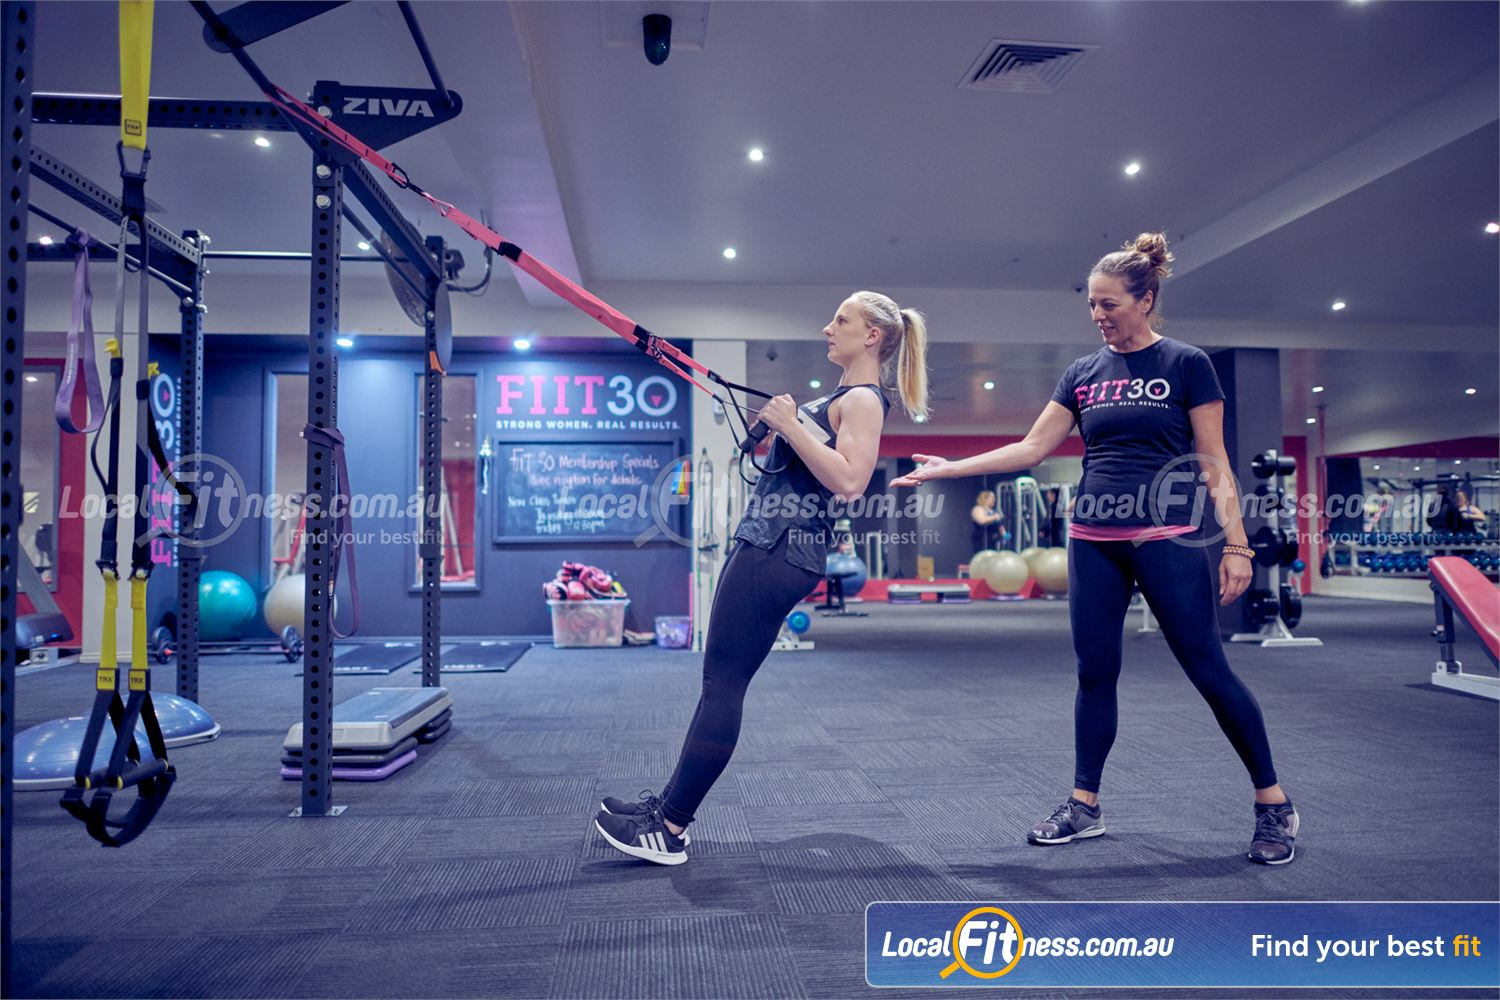 Fernwood Fitness Bulleen Fernwood FIIT 30 is an exclusive women's functional workout designed for women.